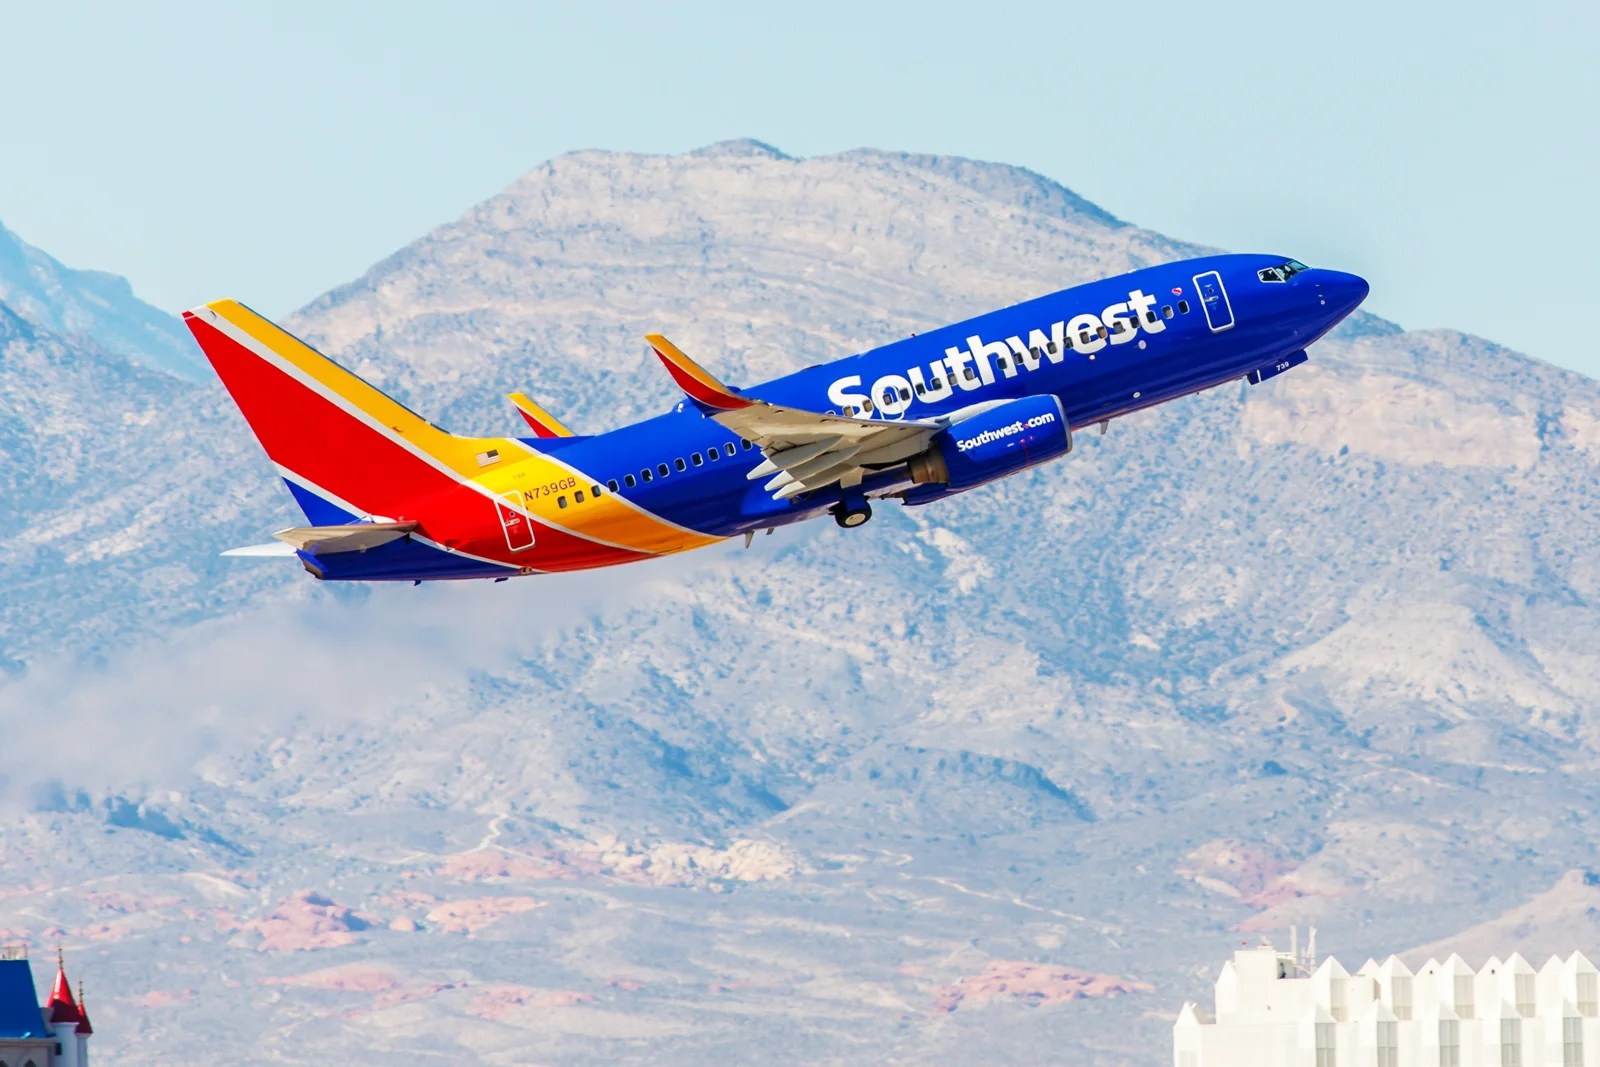 Turn Limited-Time Southwest One Card Companion Pass Offer Into a Two-Year Pass